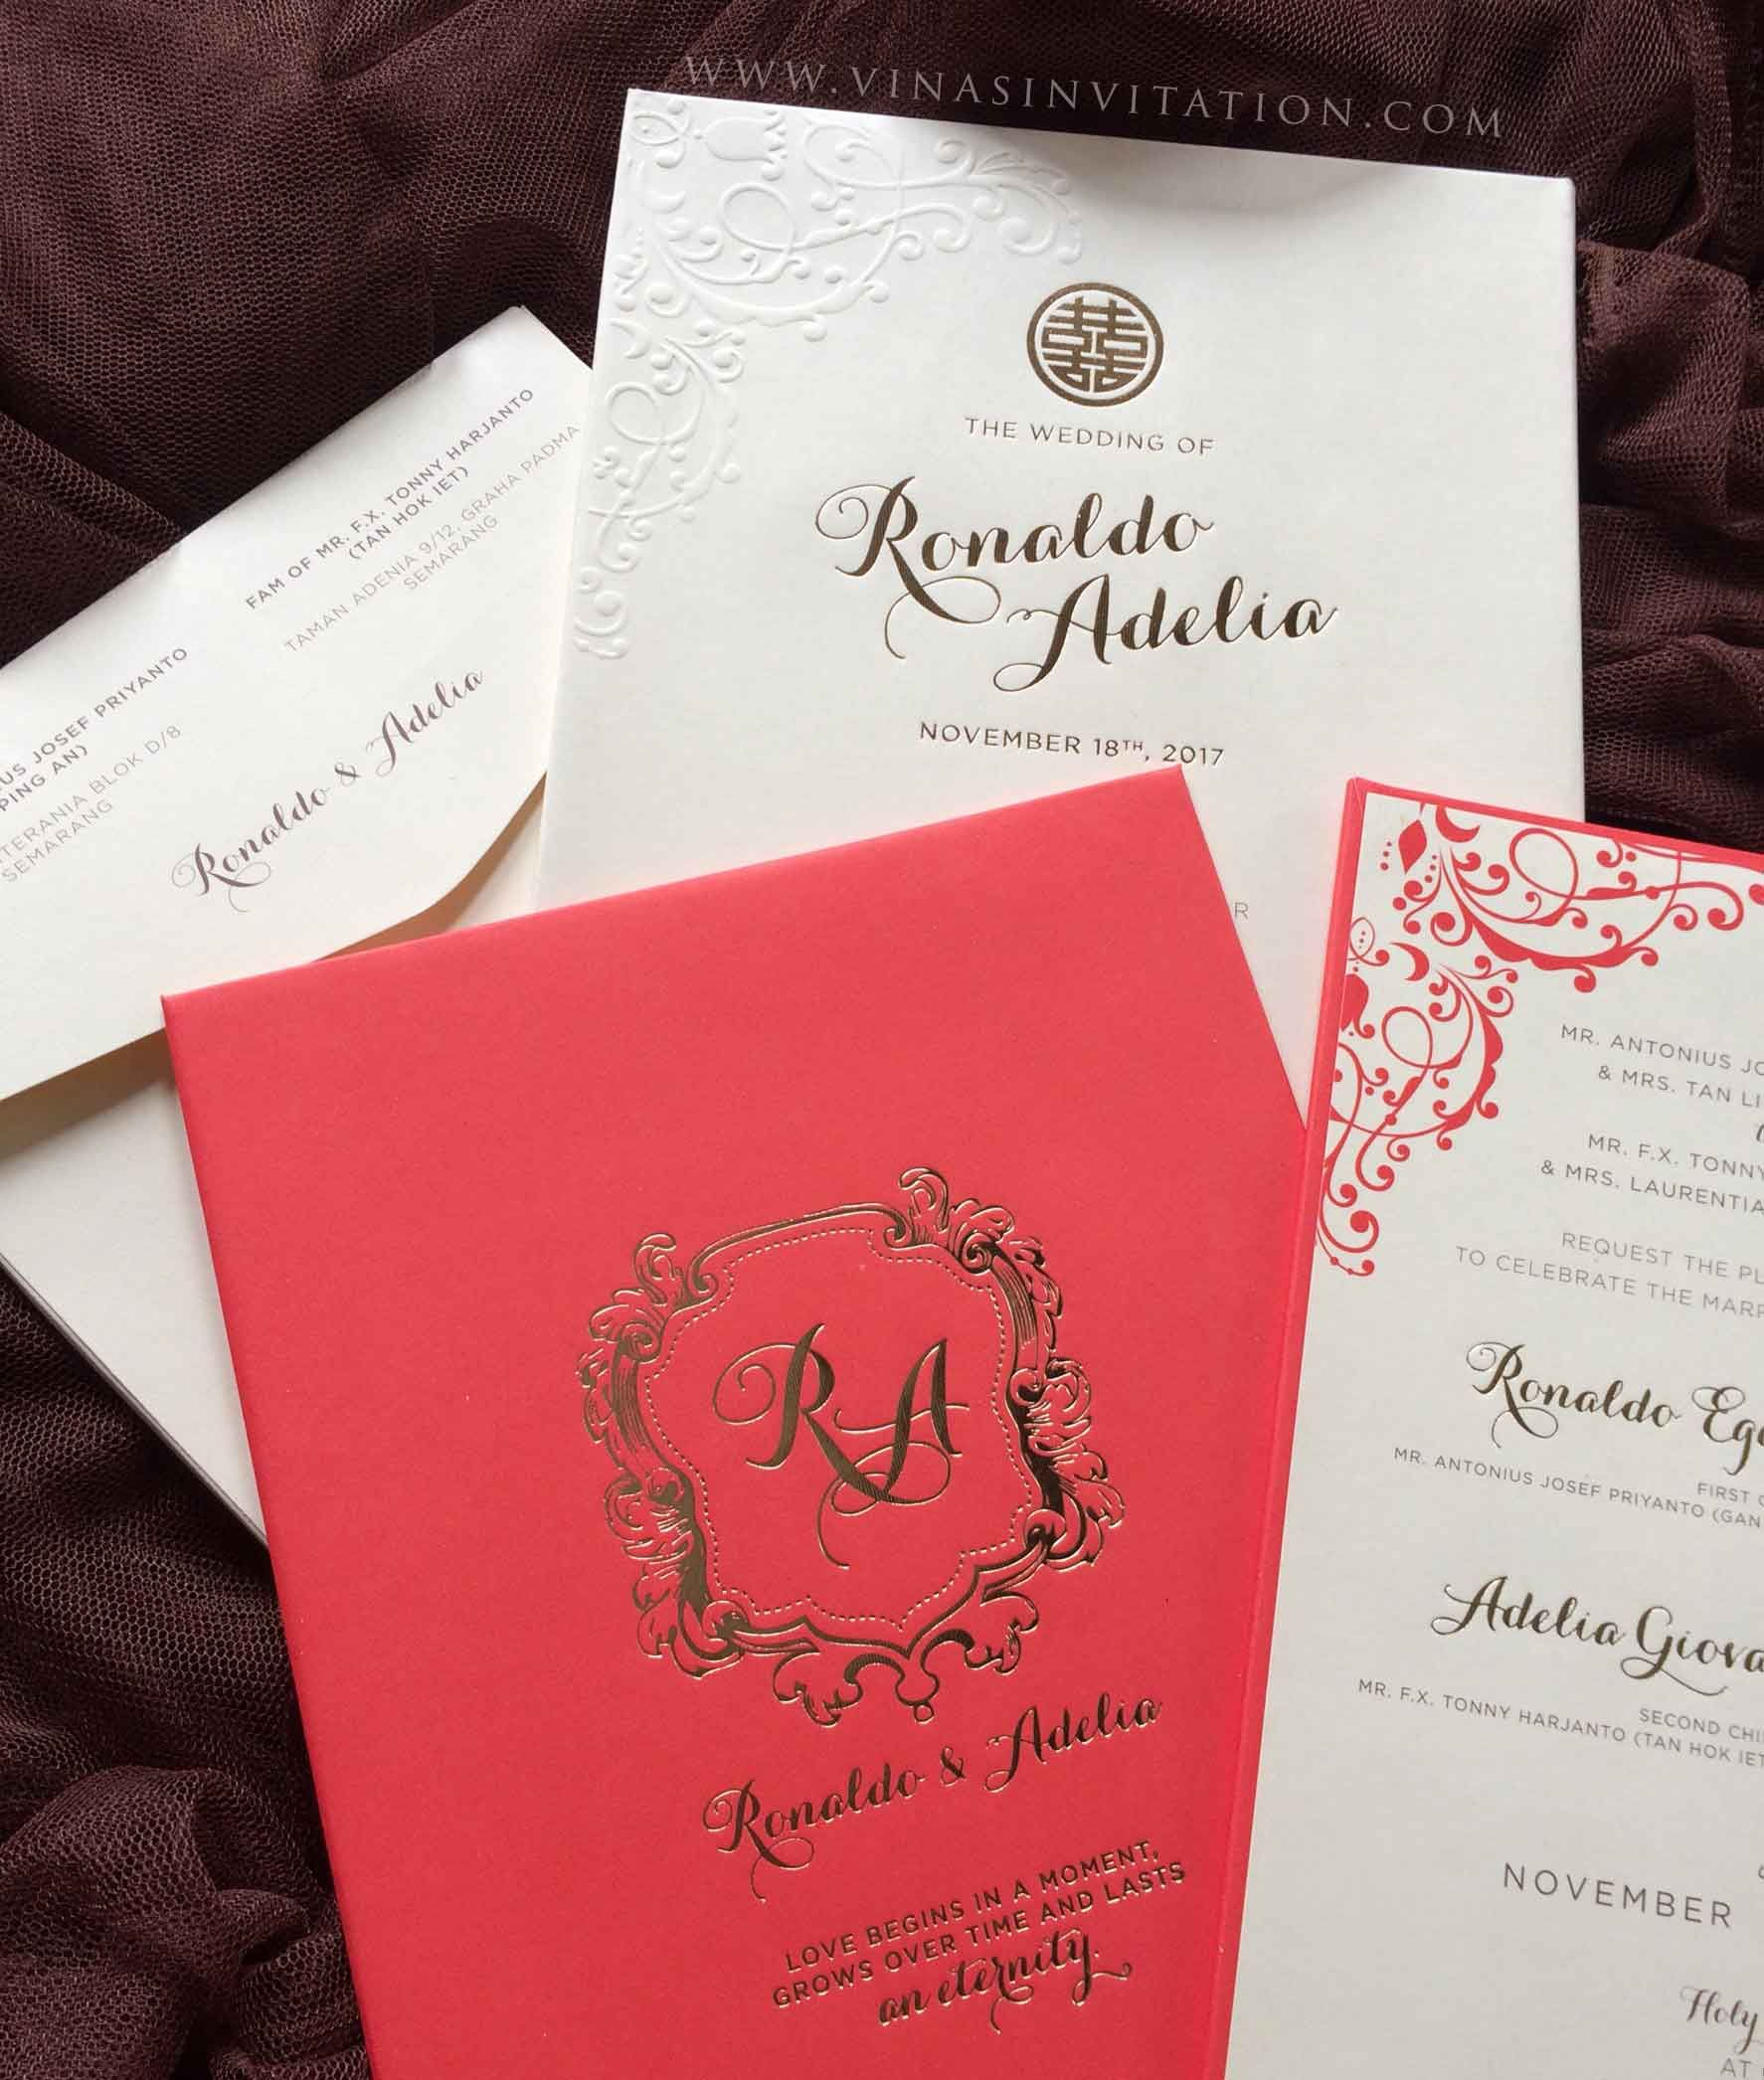 vinas invitation wedding invitation semarang wedding invitation